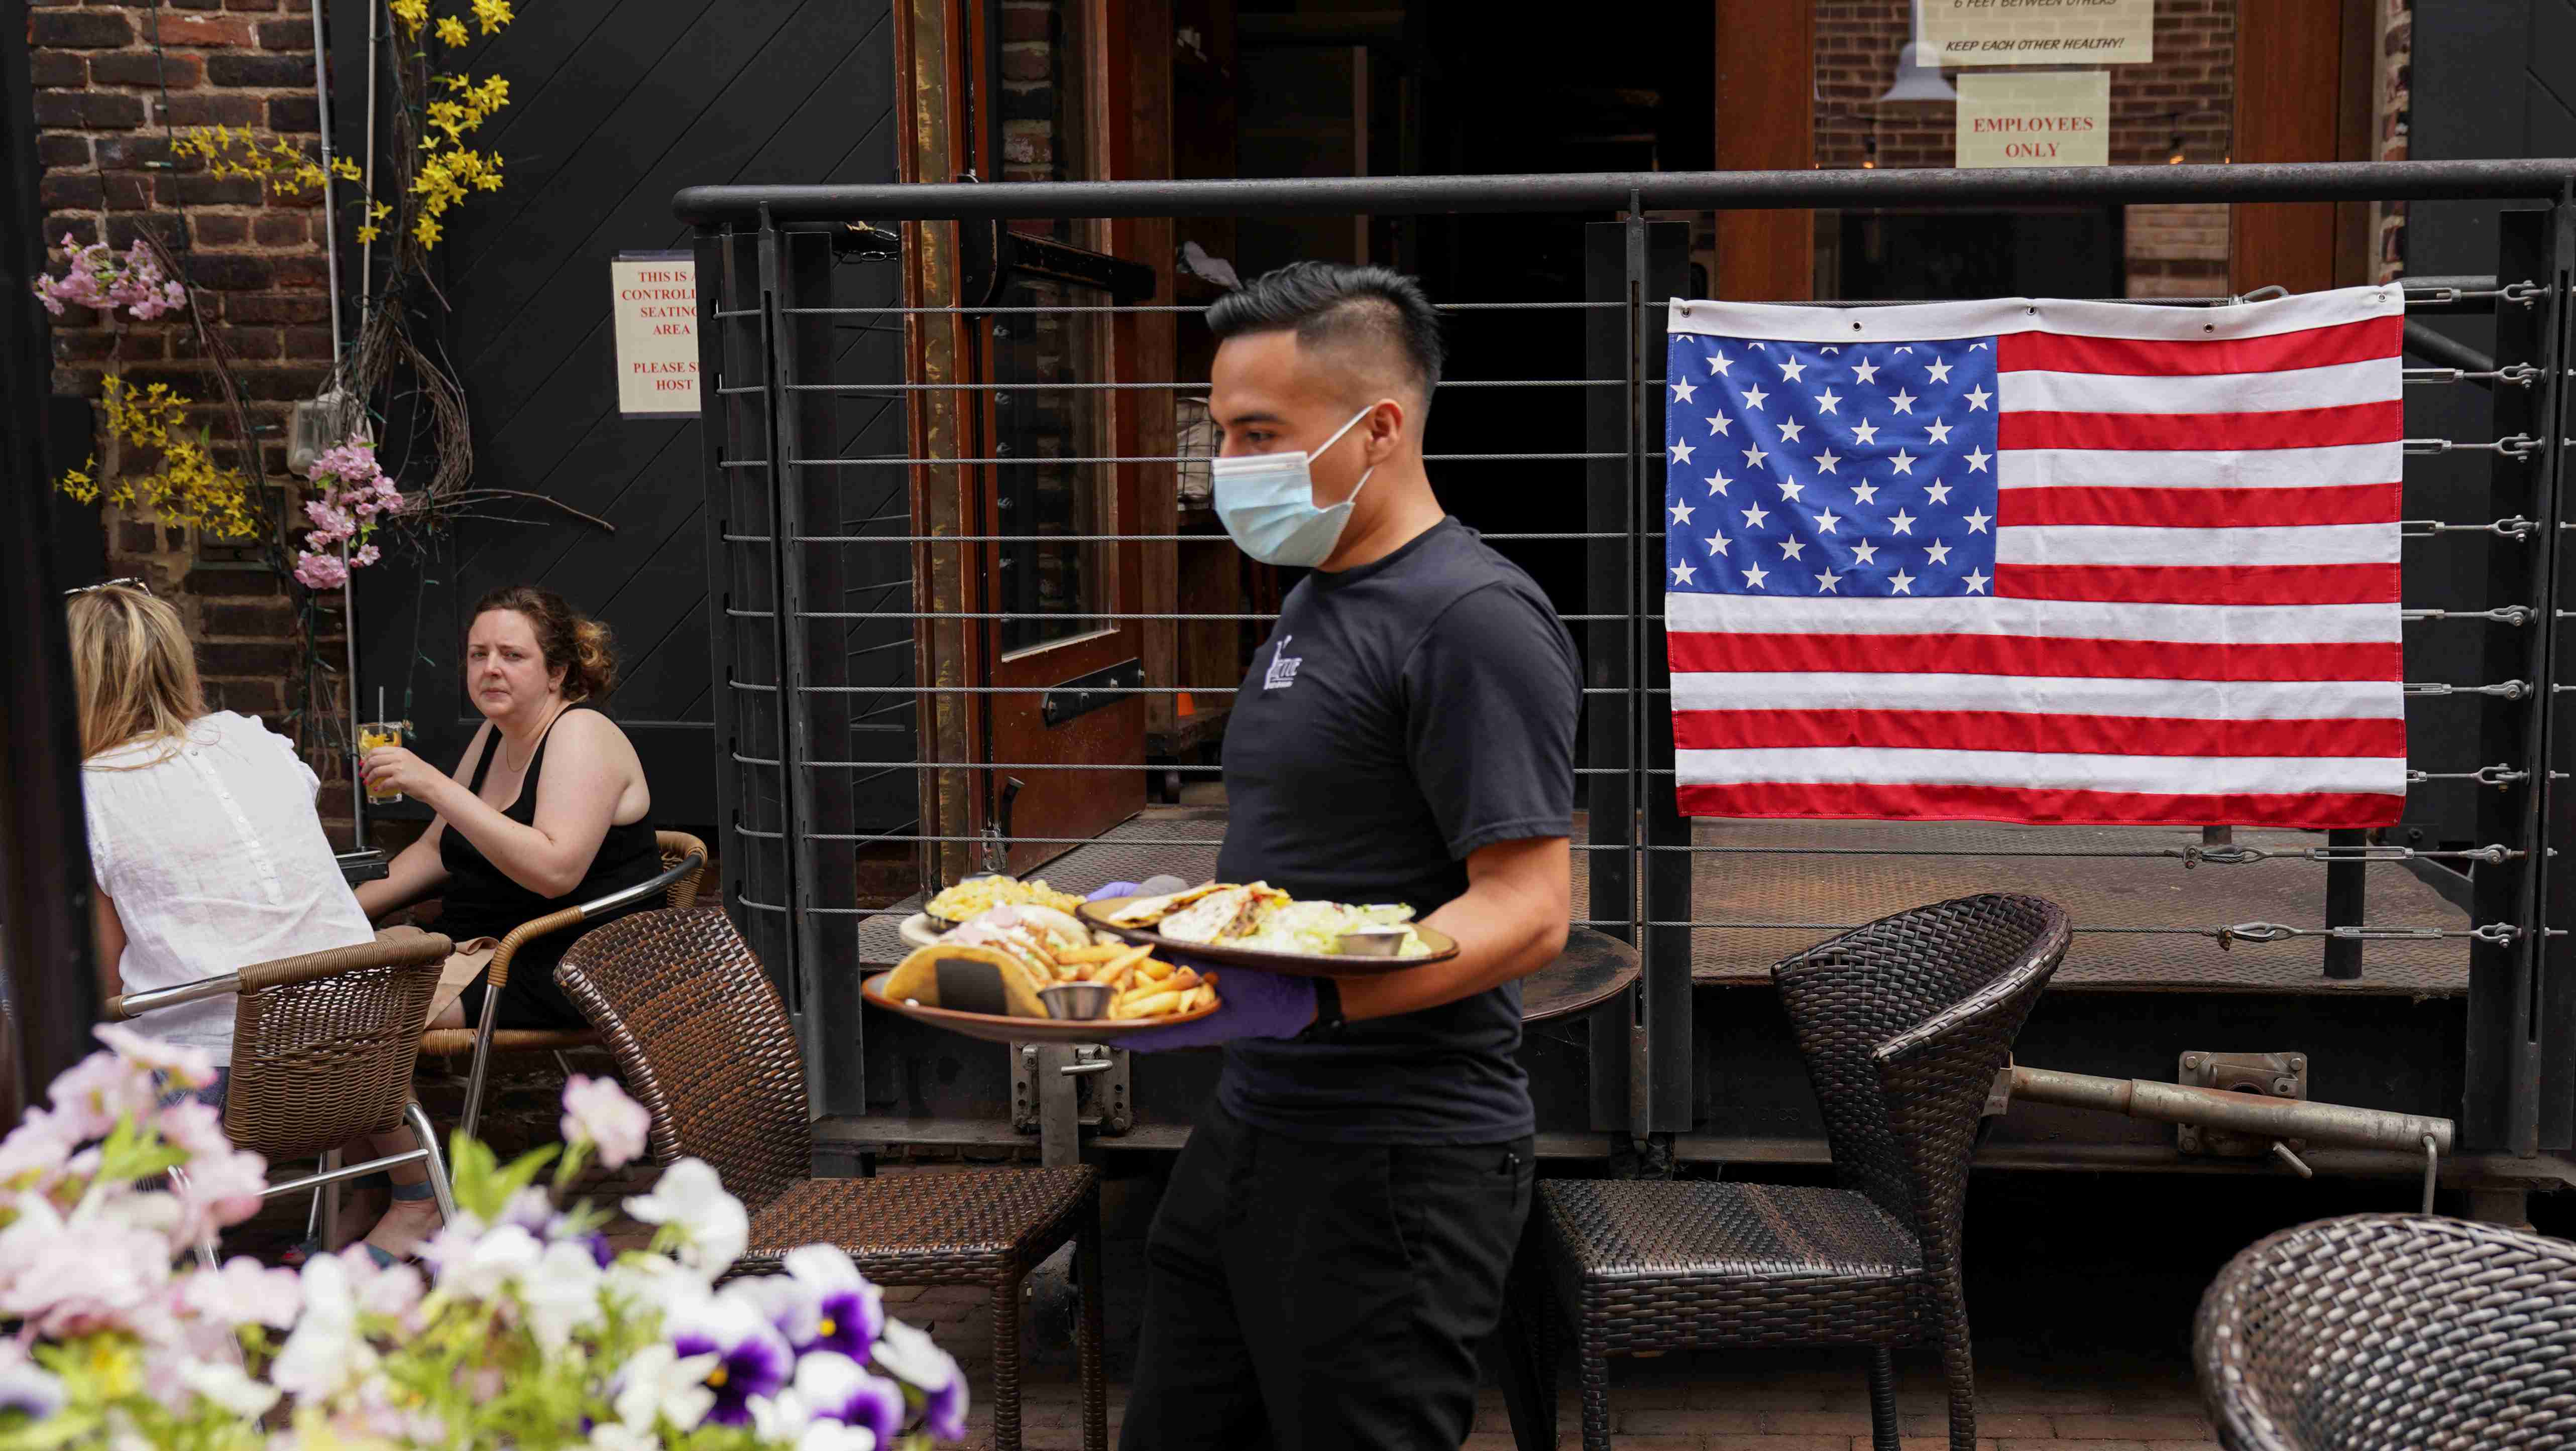 As Phase One of reopening begins in Northern Virginia today, a waiter in a face mask to protect against the coronavirus (COVID-19) serves diners seated outdoors at a restaurant in Alexandria, Virginia, U.S., May 29, 2020.  REUTERS/Kevin Lamarque